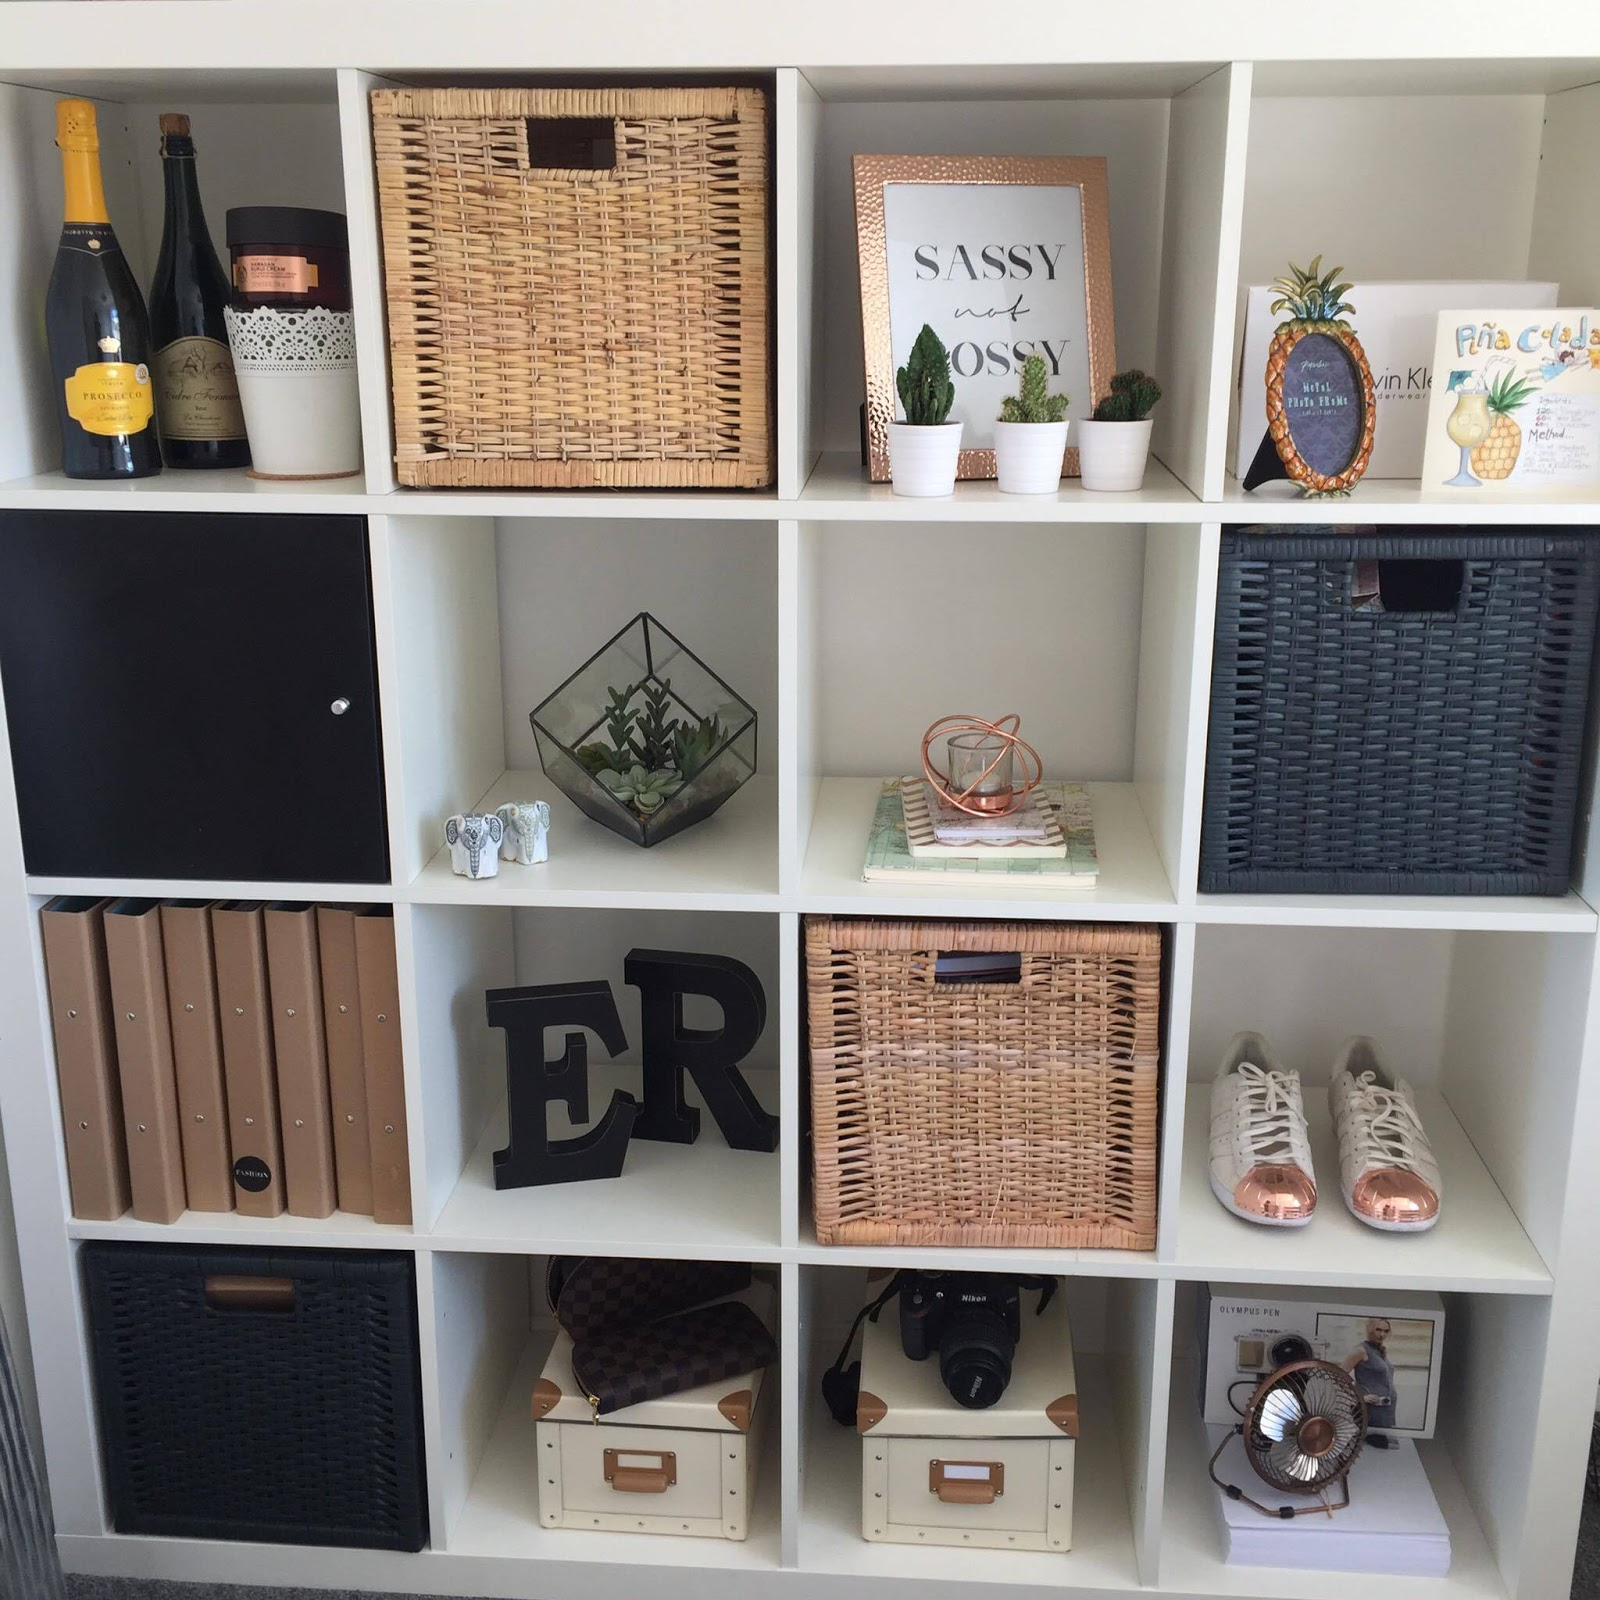 1000 Images About Ikea Showroom Inspiration On Pinterest: 1000+ Images About Ikea Kallax Layout Ideas On Pinterest